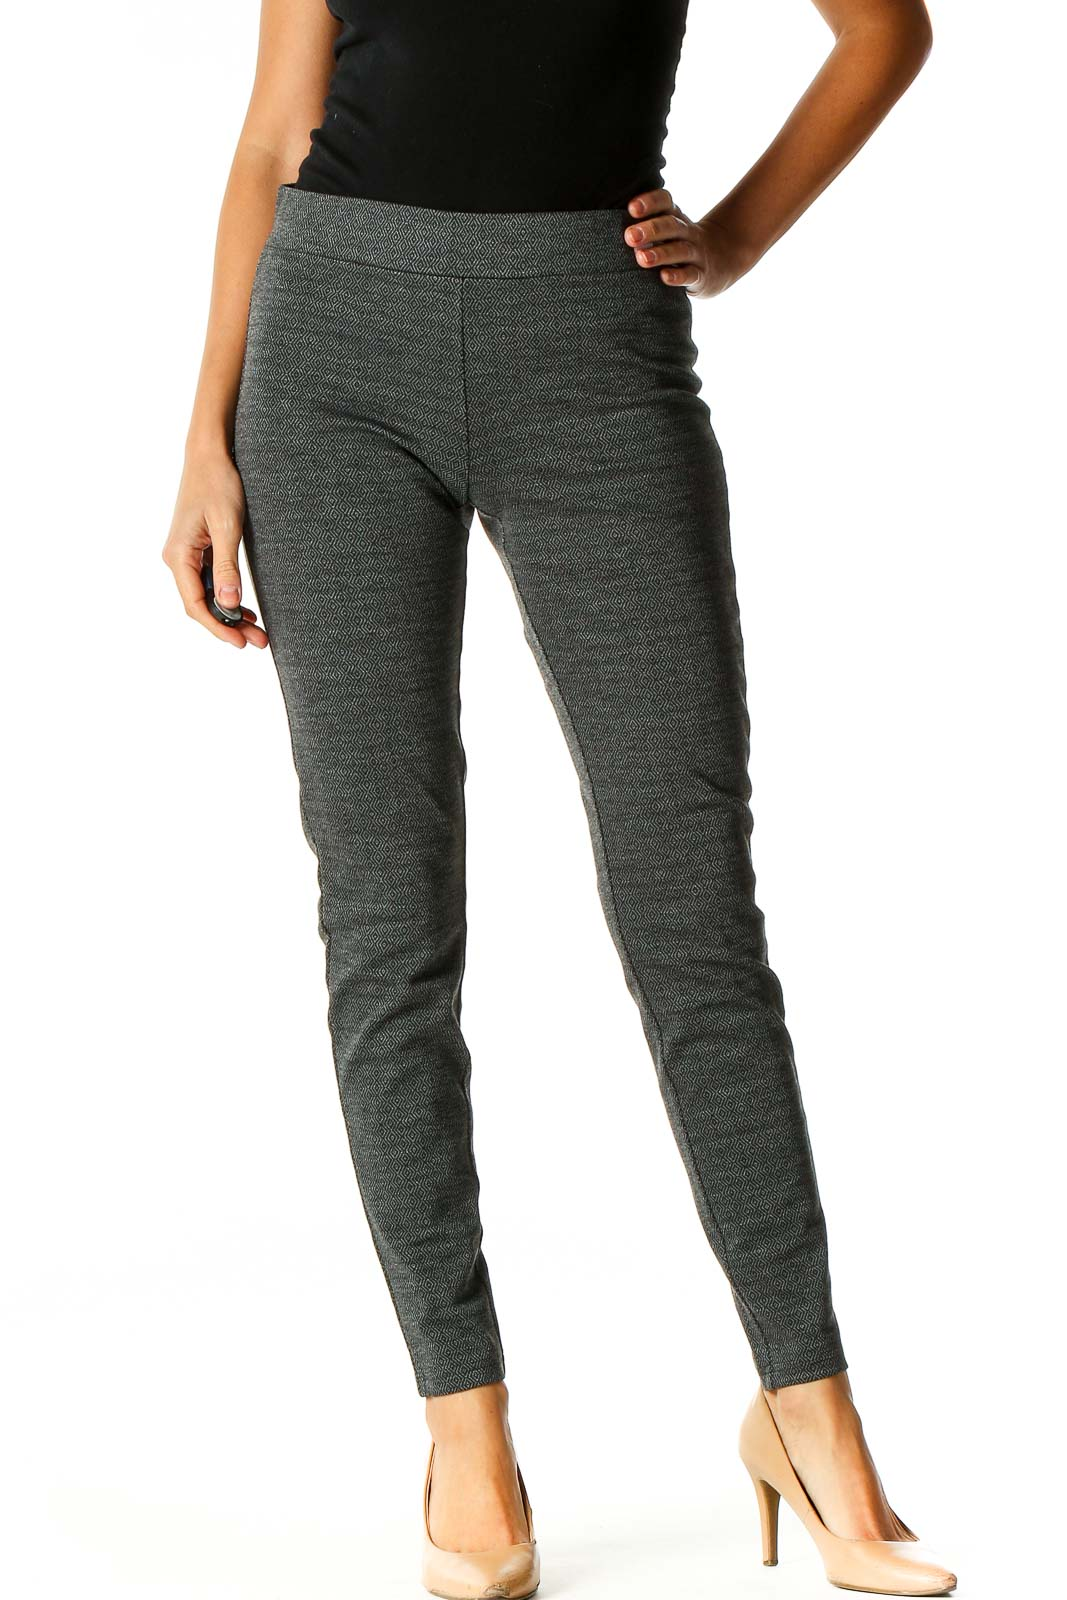 Gray Textured Casual Leggings Front